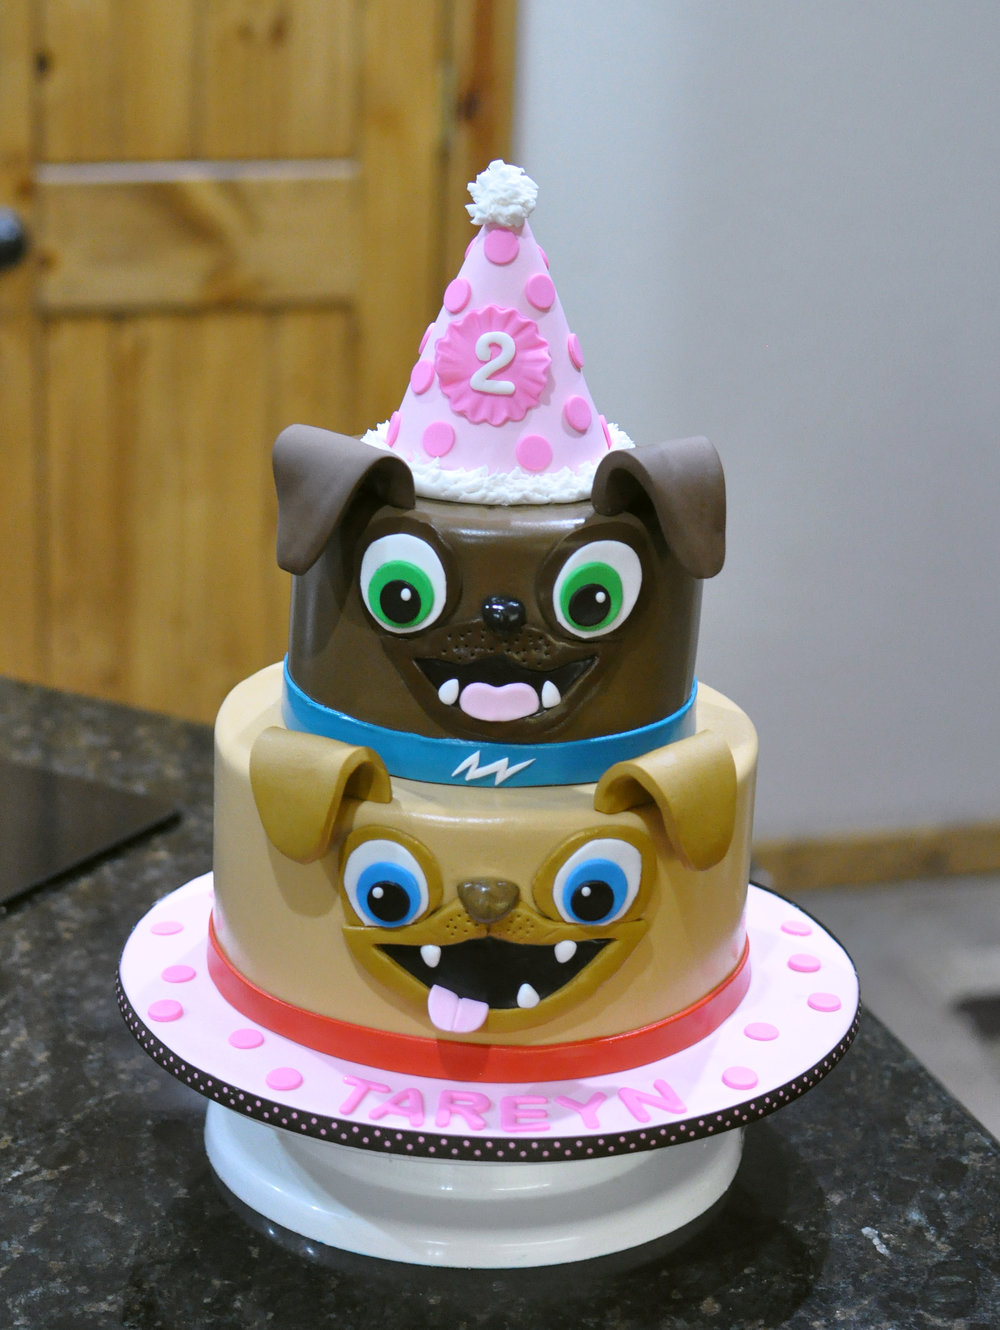 There you go - a cute little party hat that adds a great touch on a kids birthday cake!!